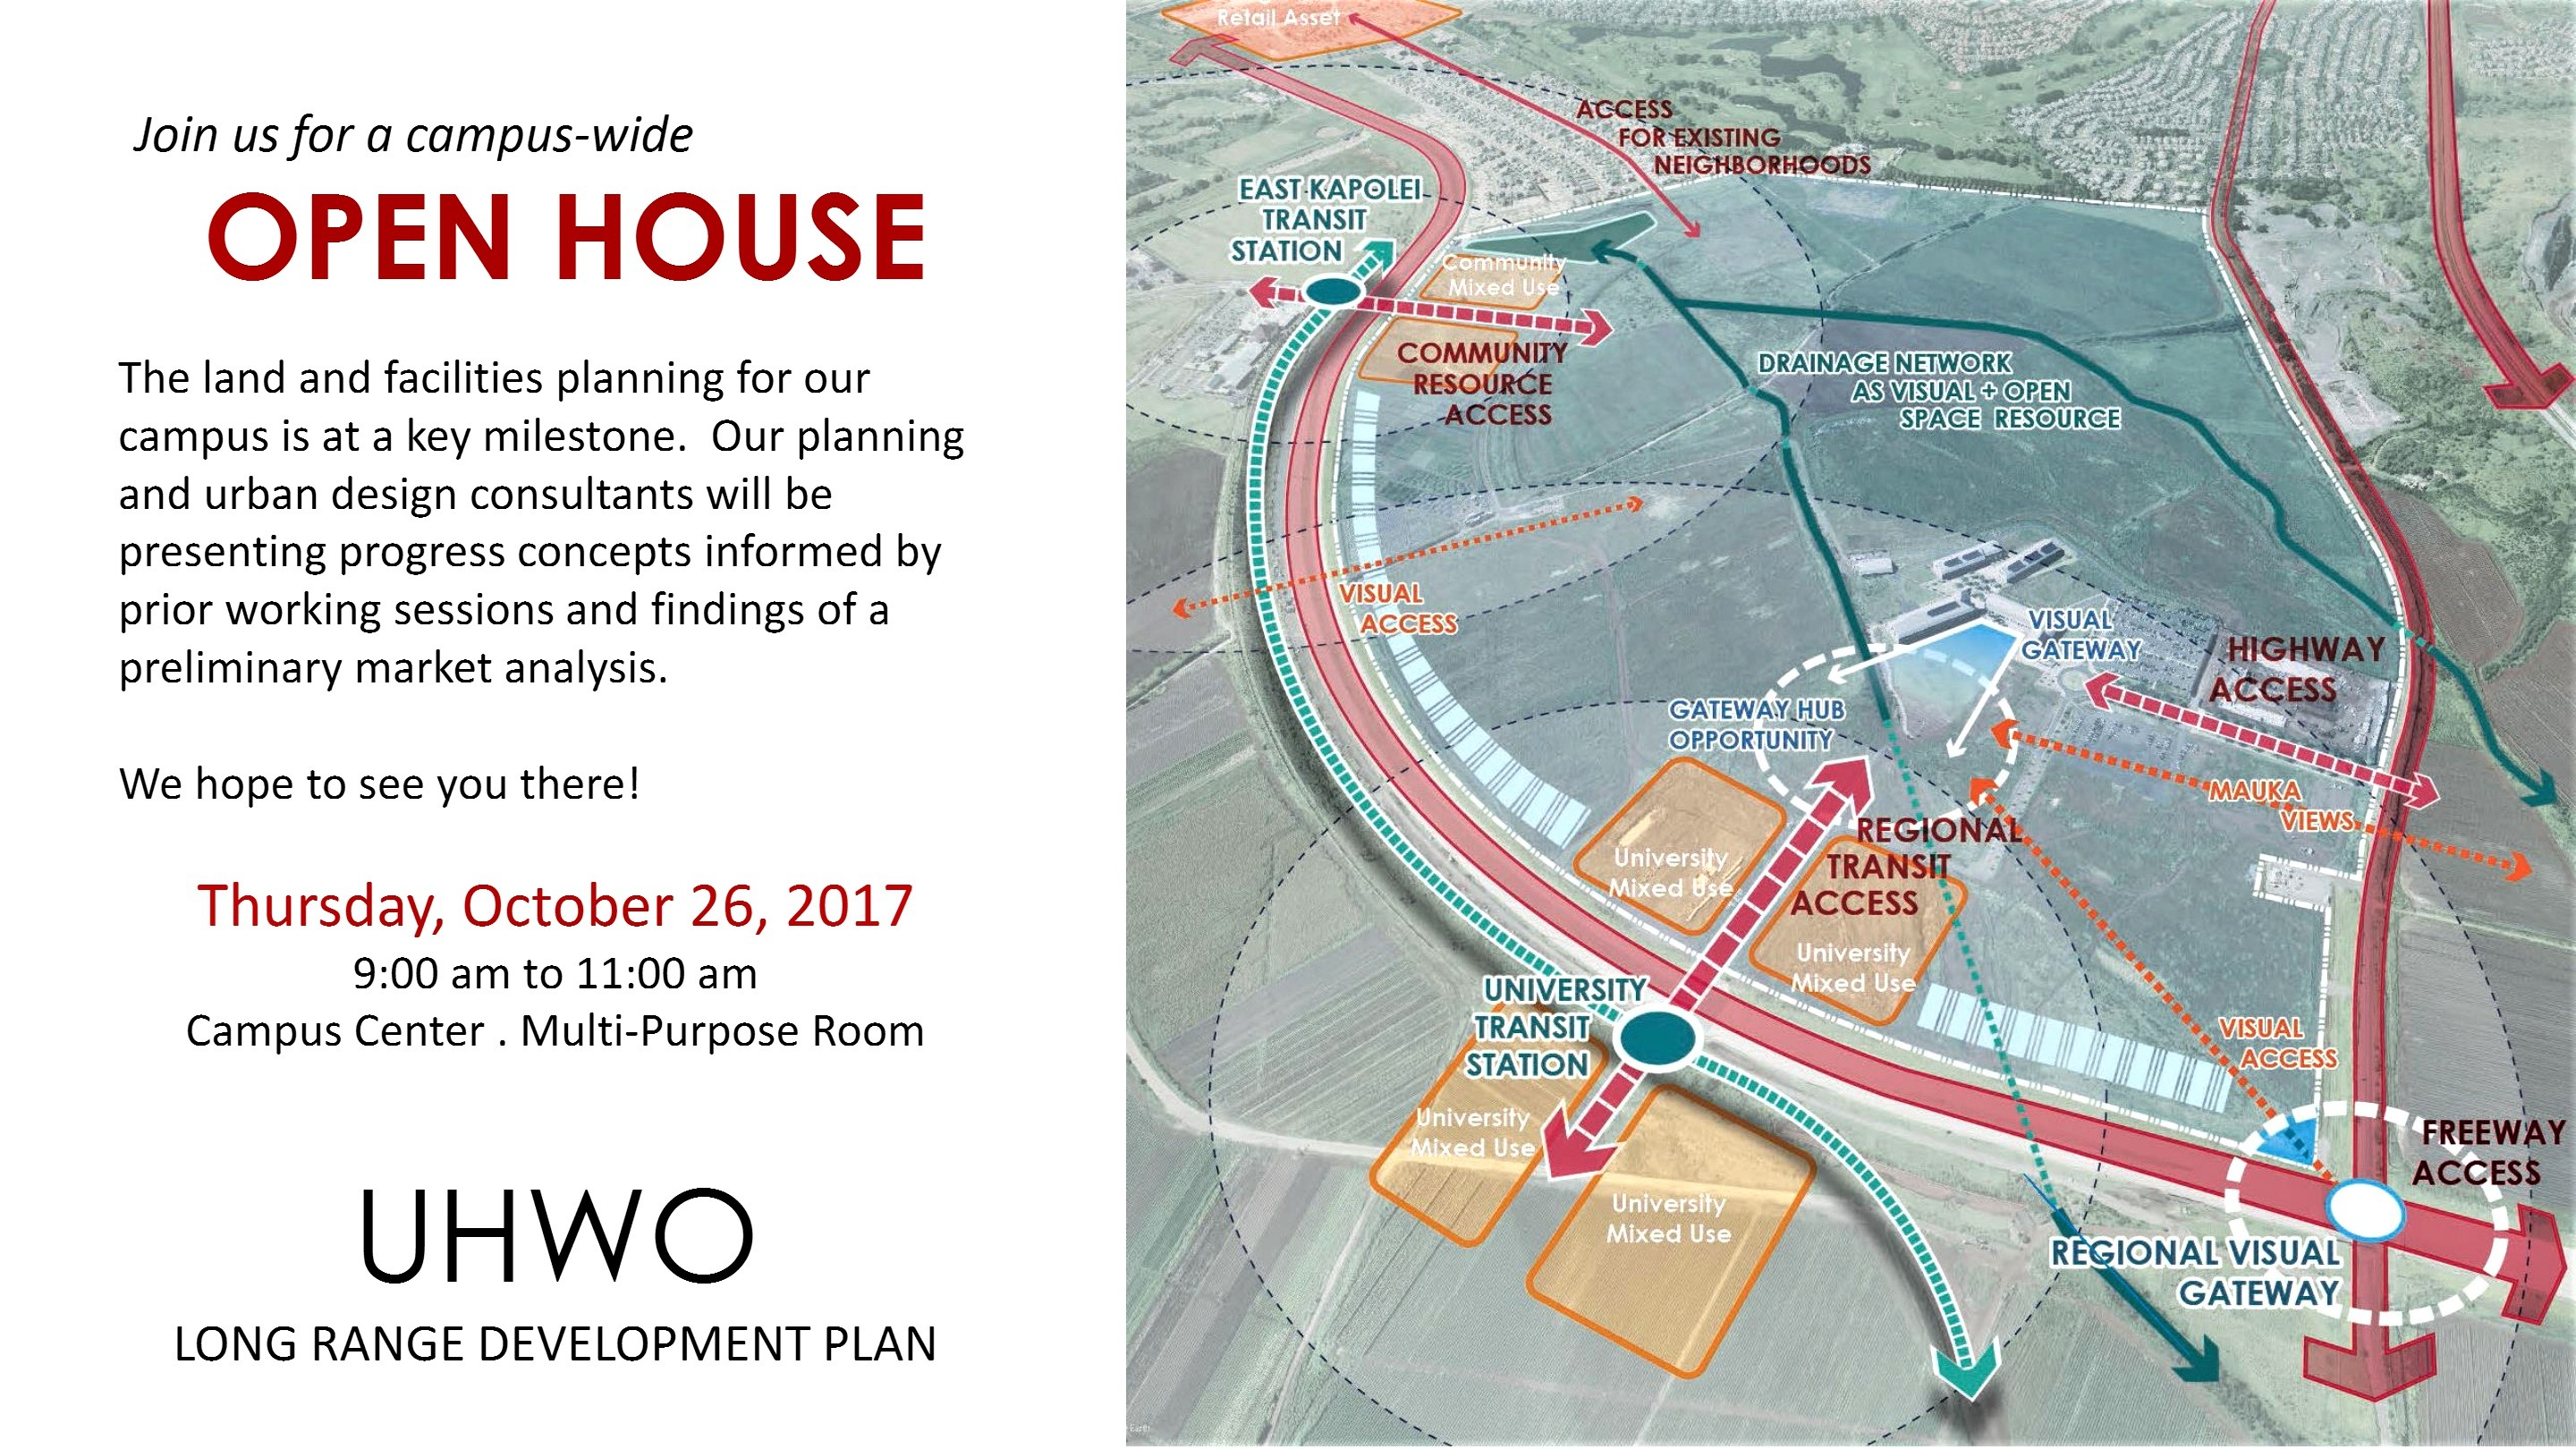 Flyer for Open House with information that is contained in the article